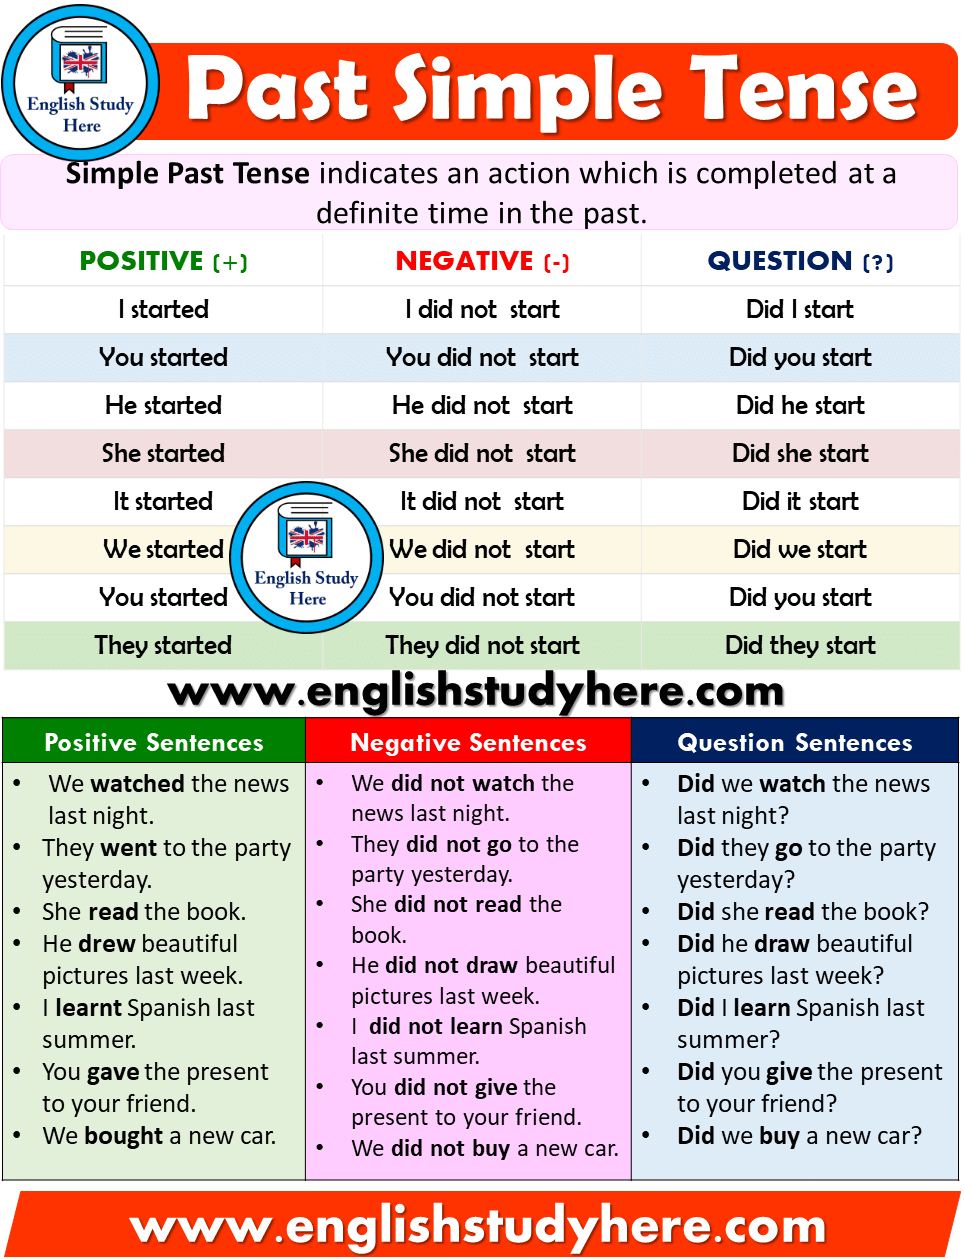 Past Simple Tense - Detailed Expression